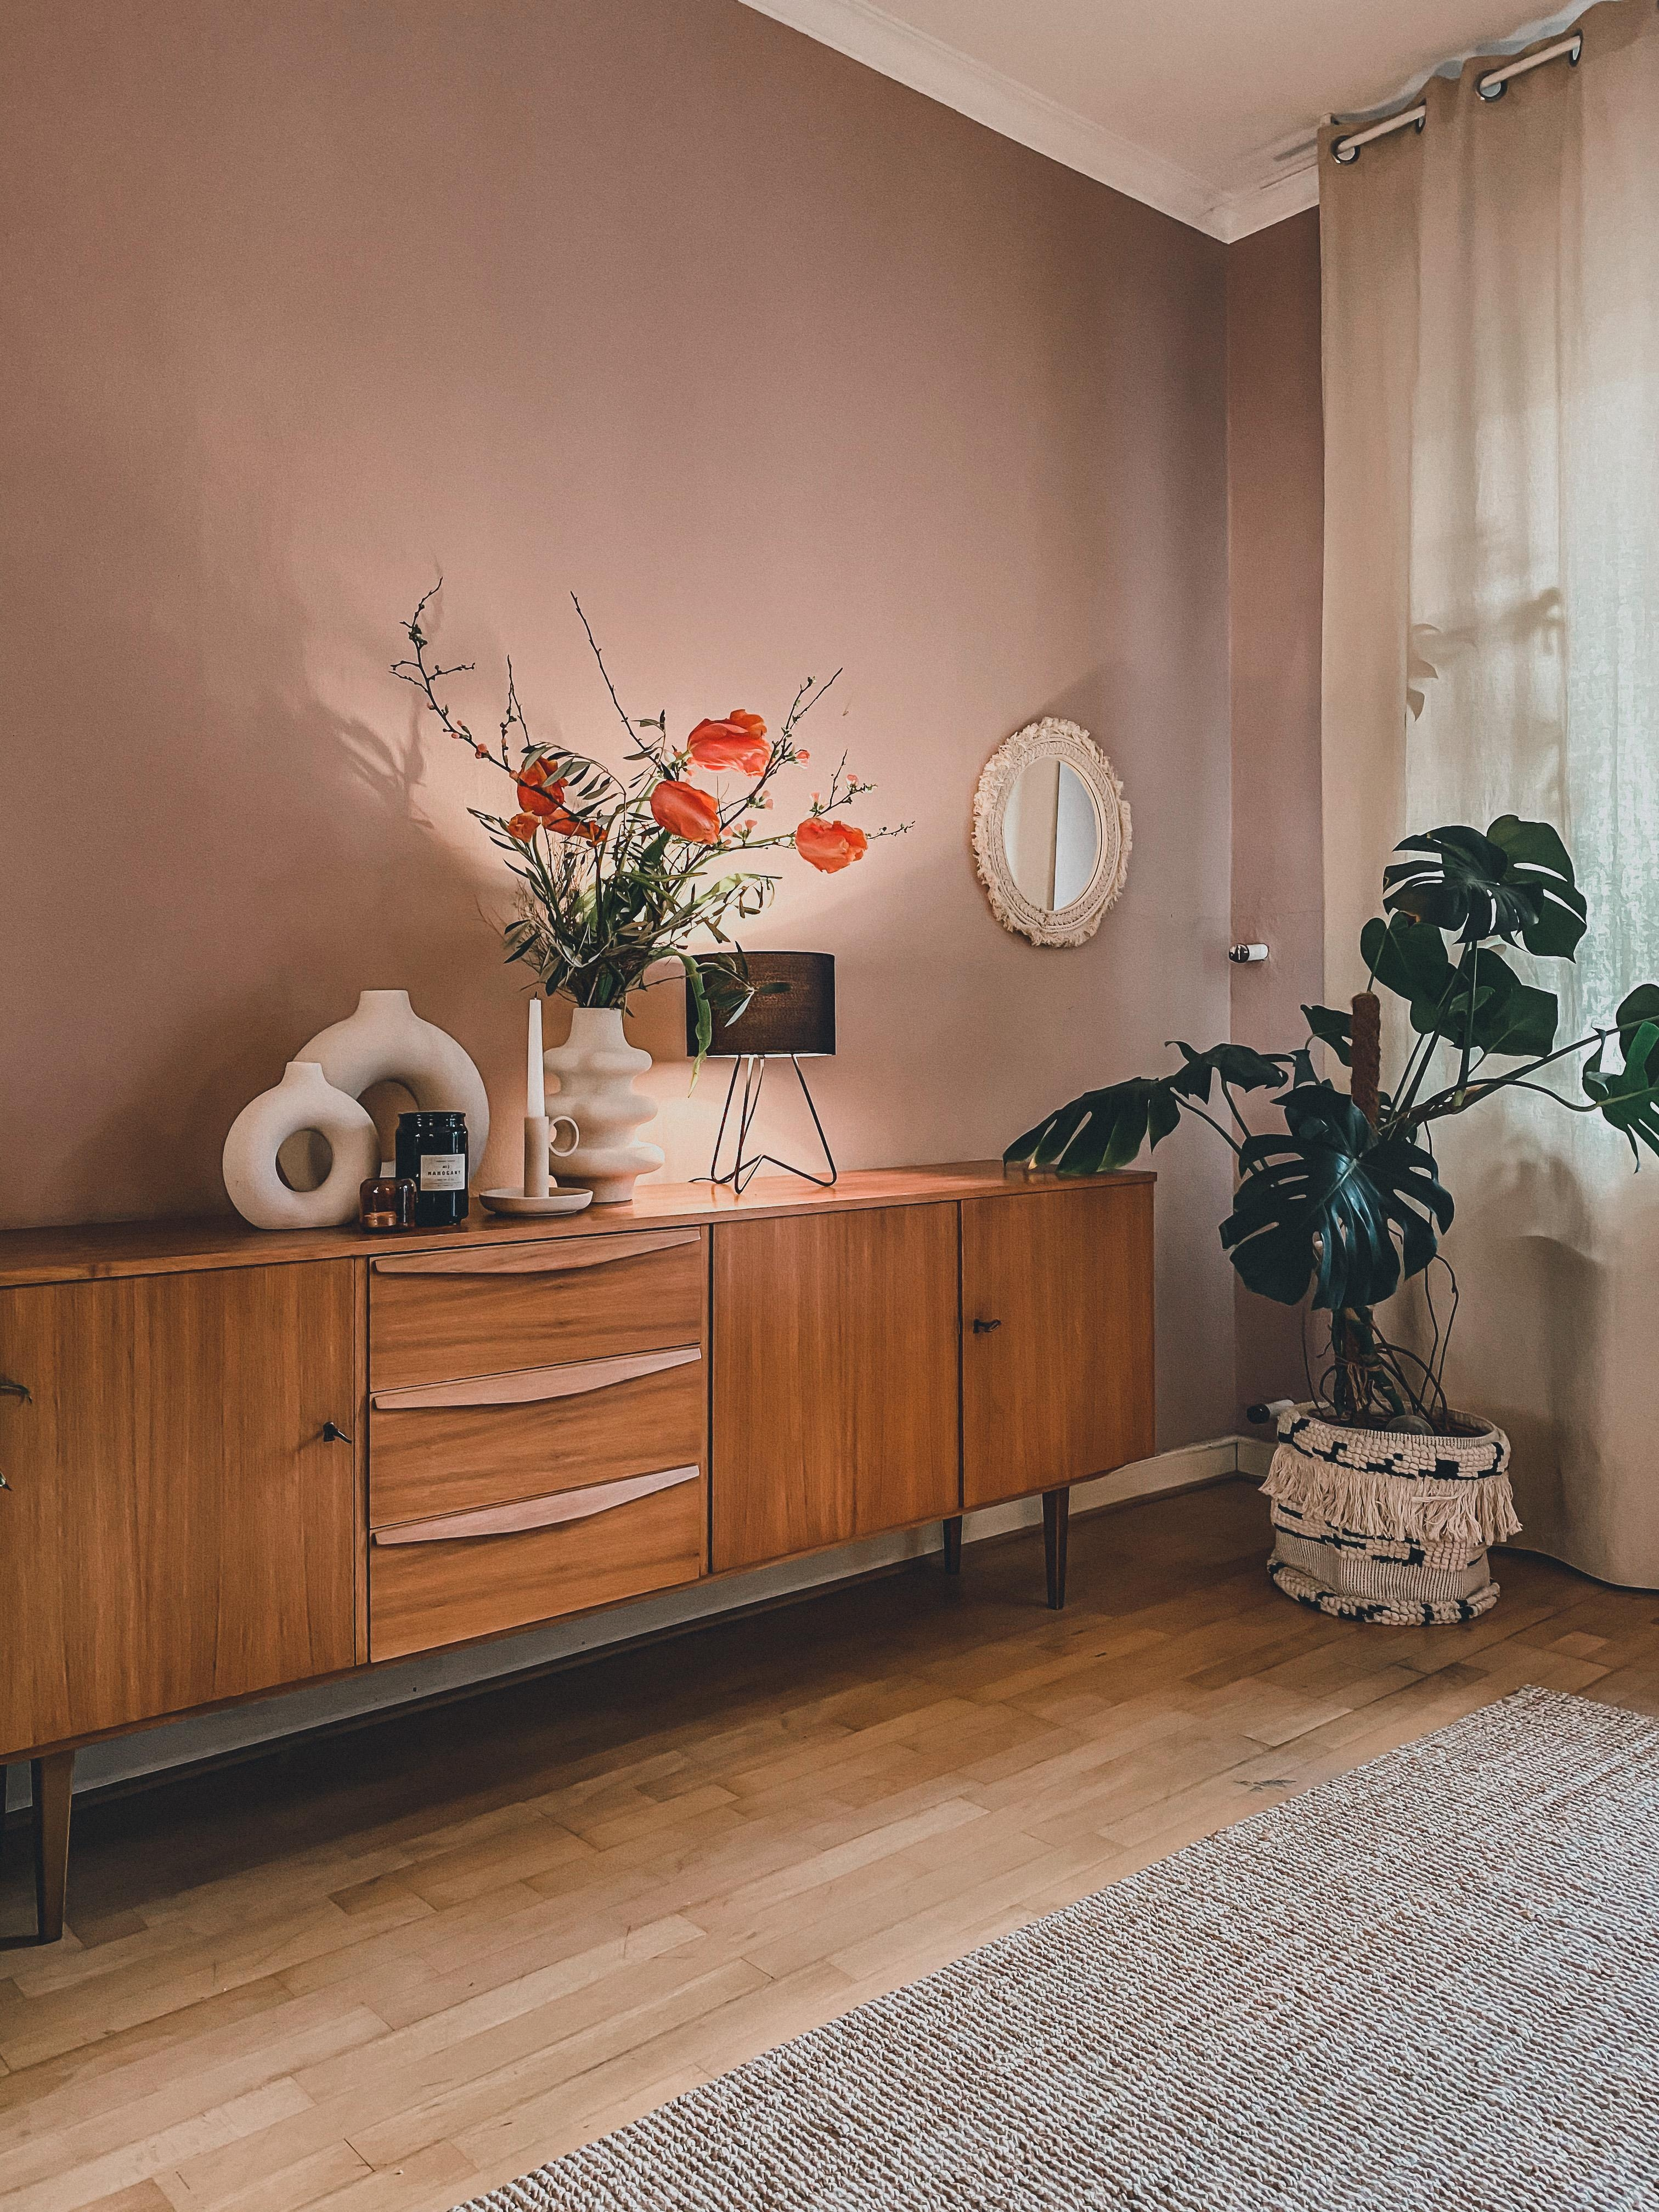 liebe dieses sideboard so sehr. #living #inspo #interior #decor